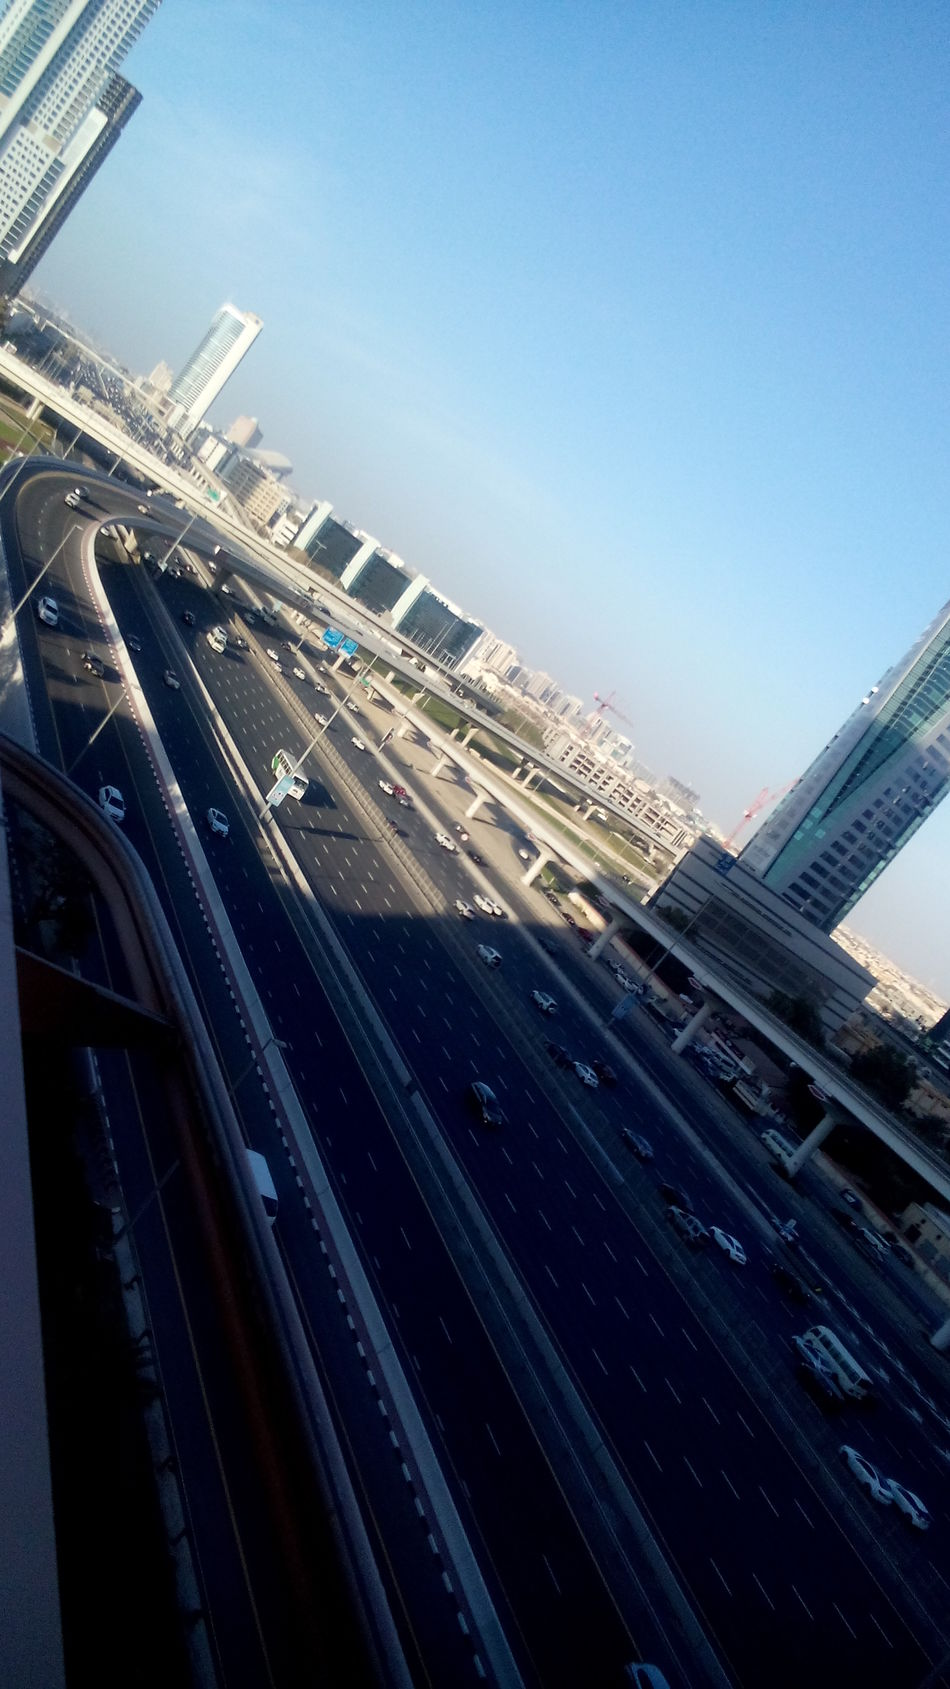 Dubai High Angle View High Section Point Of View Tecom UAE View View From Above